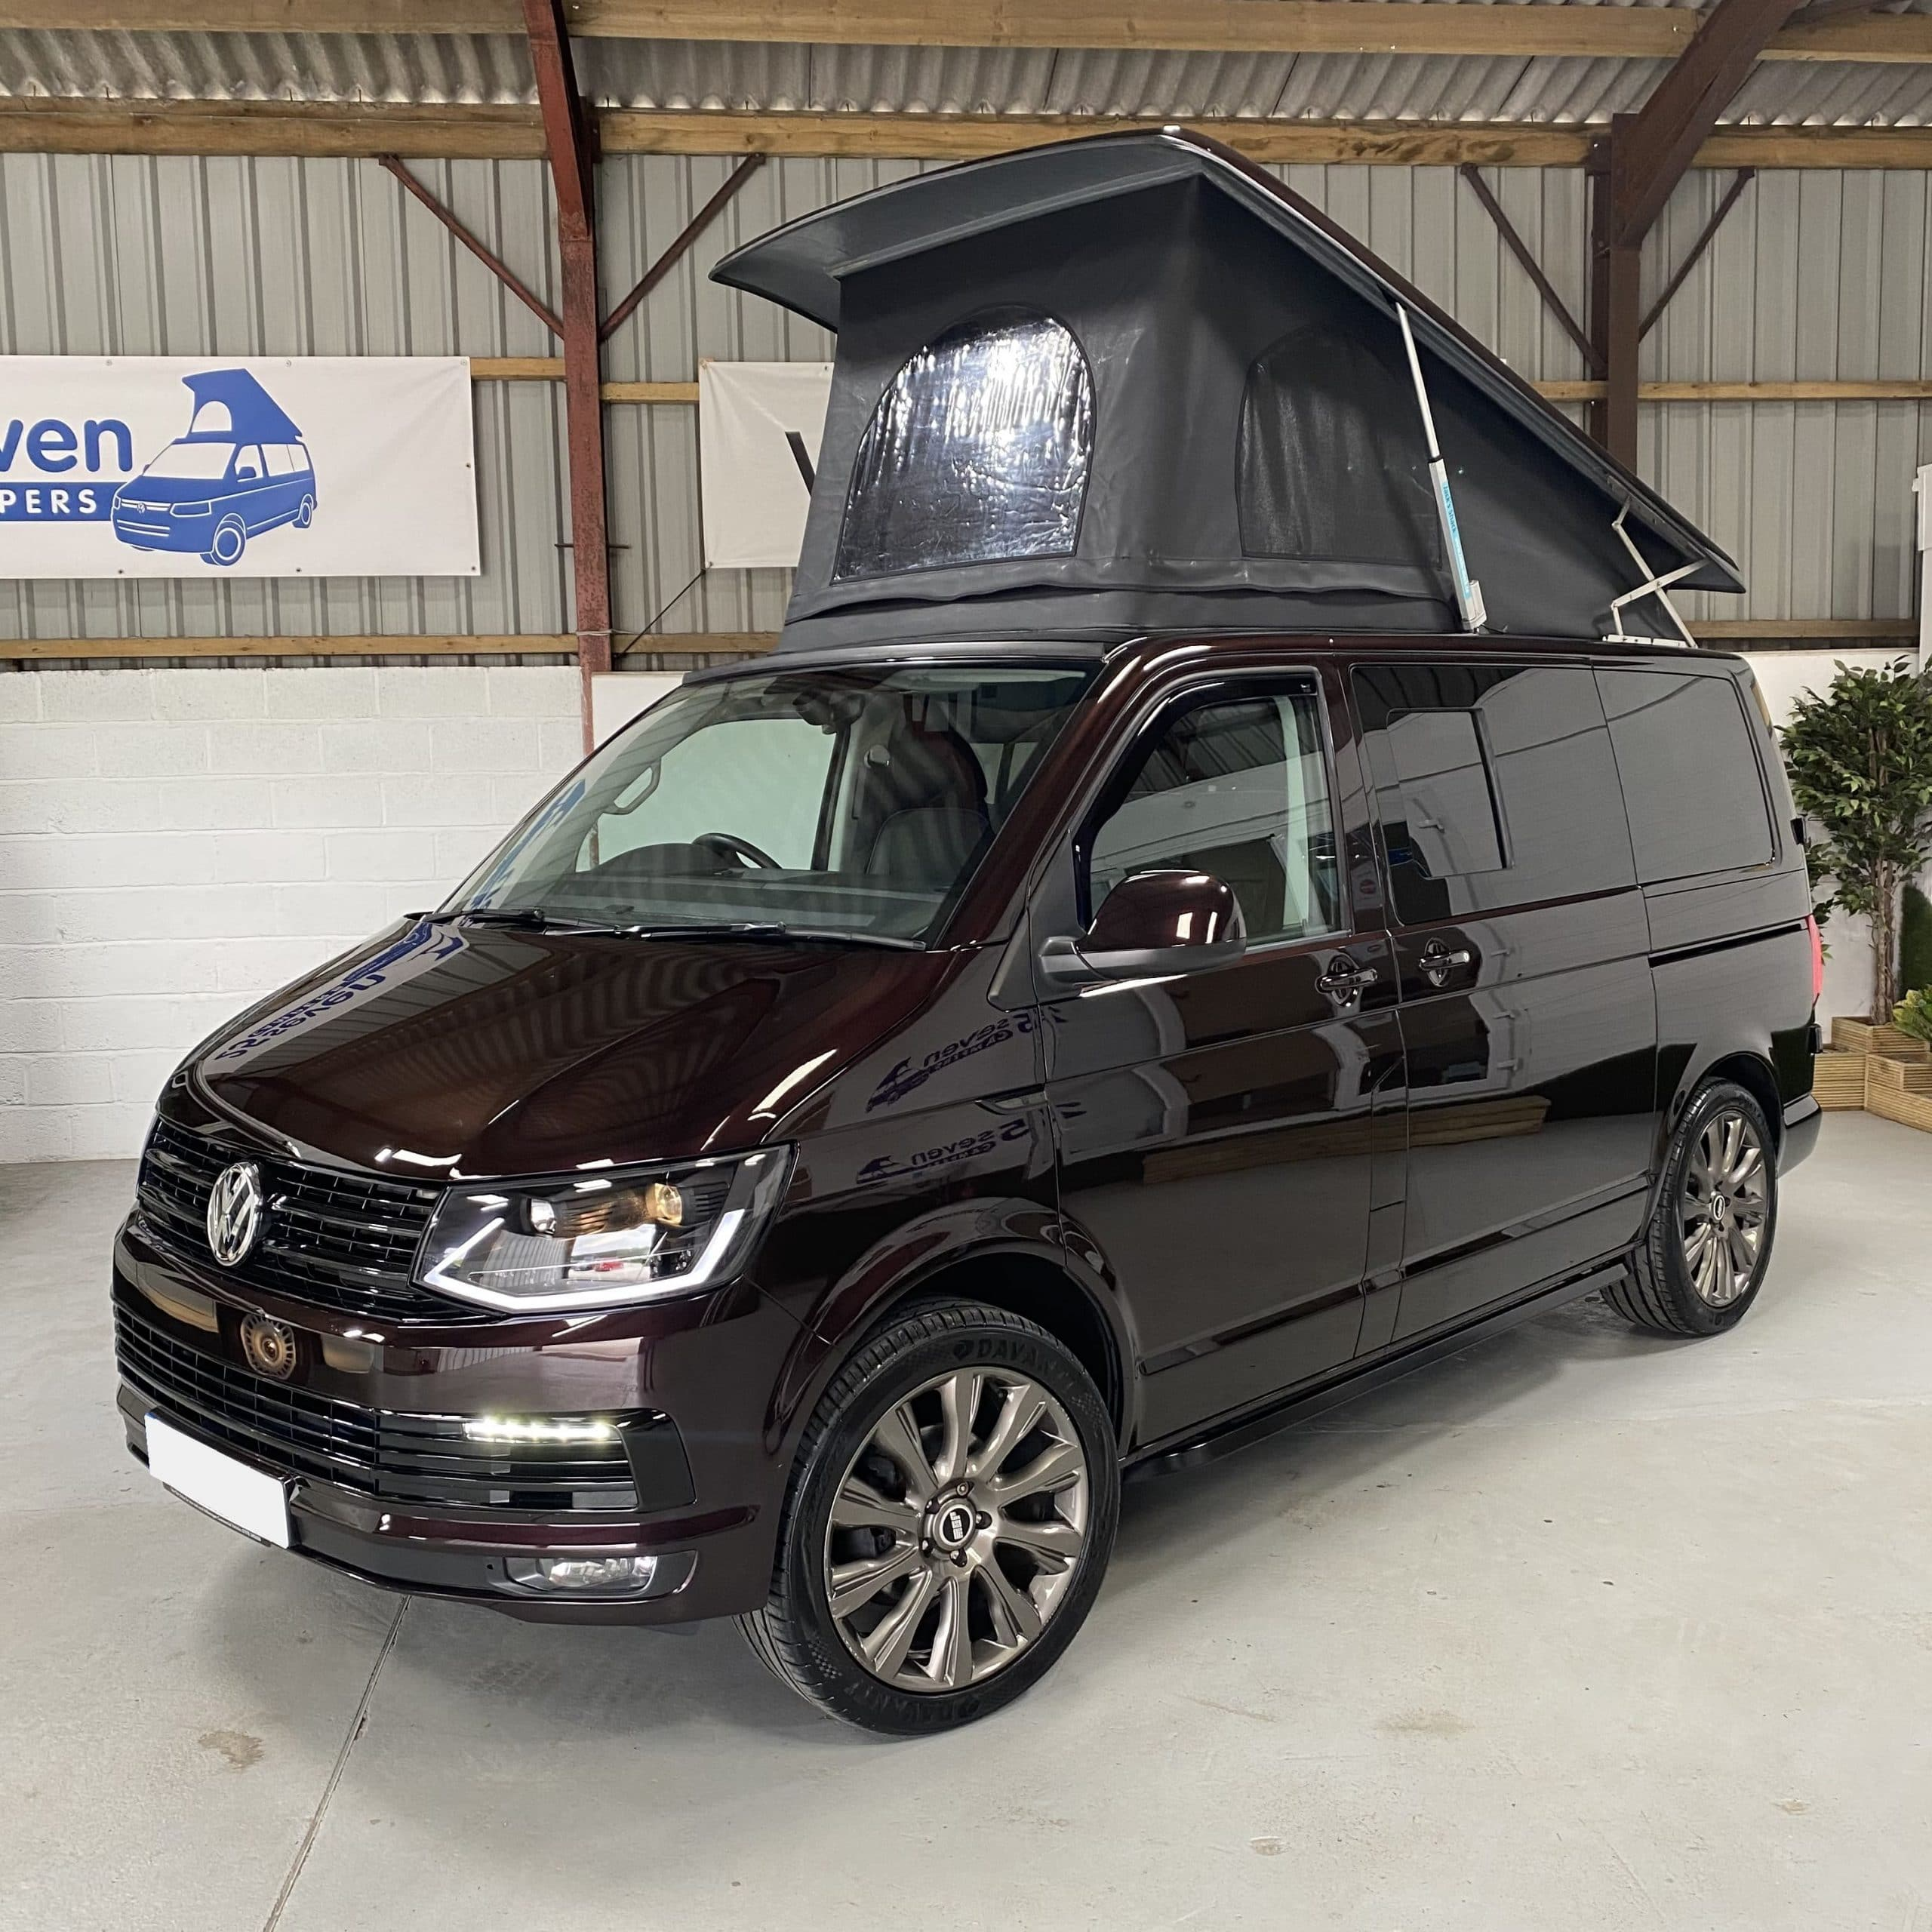 front view of fully extended VW campervan